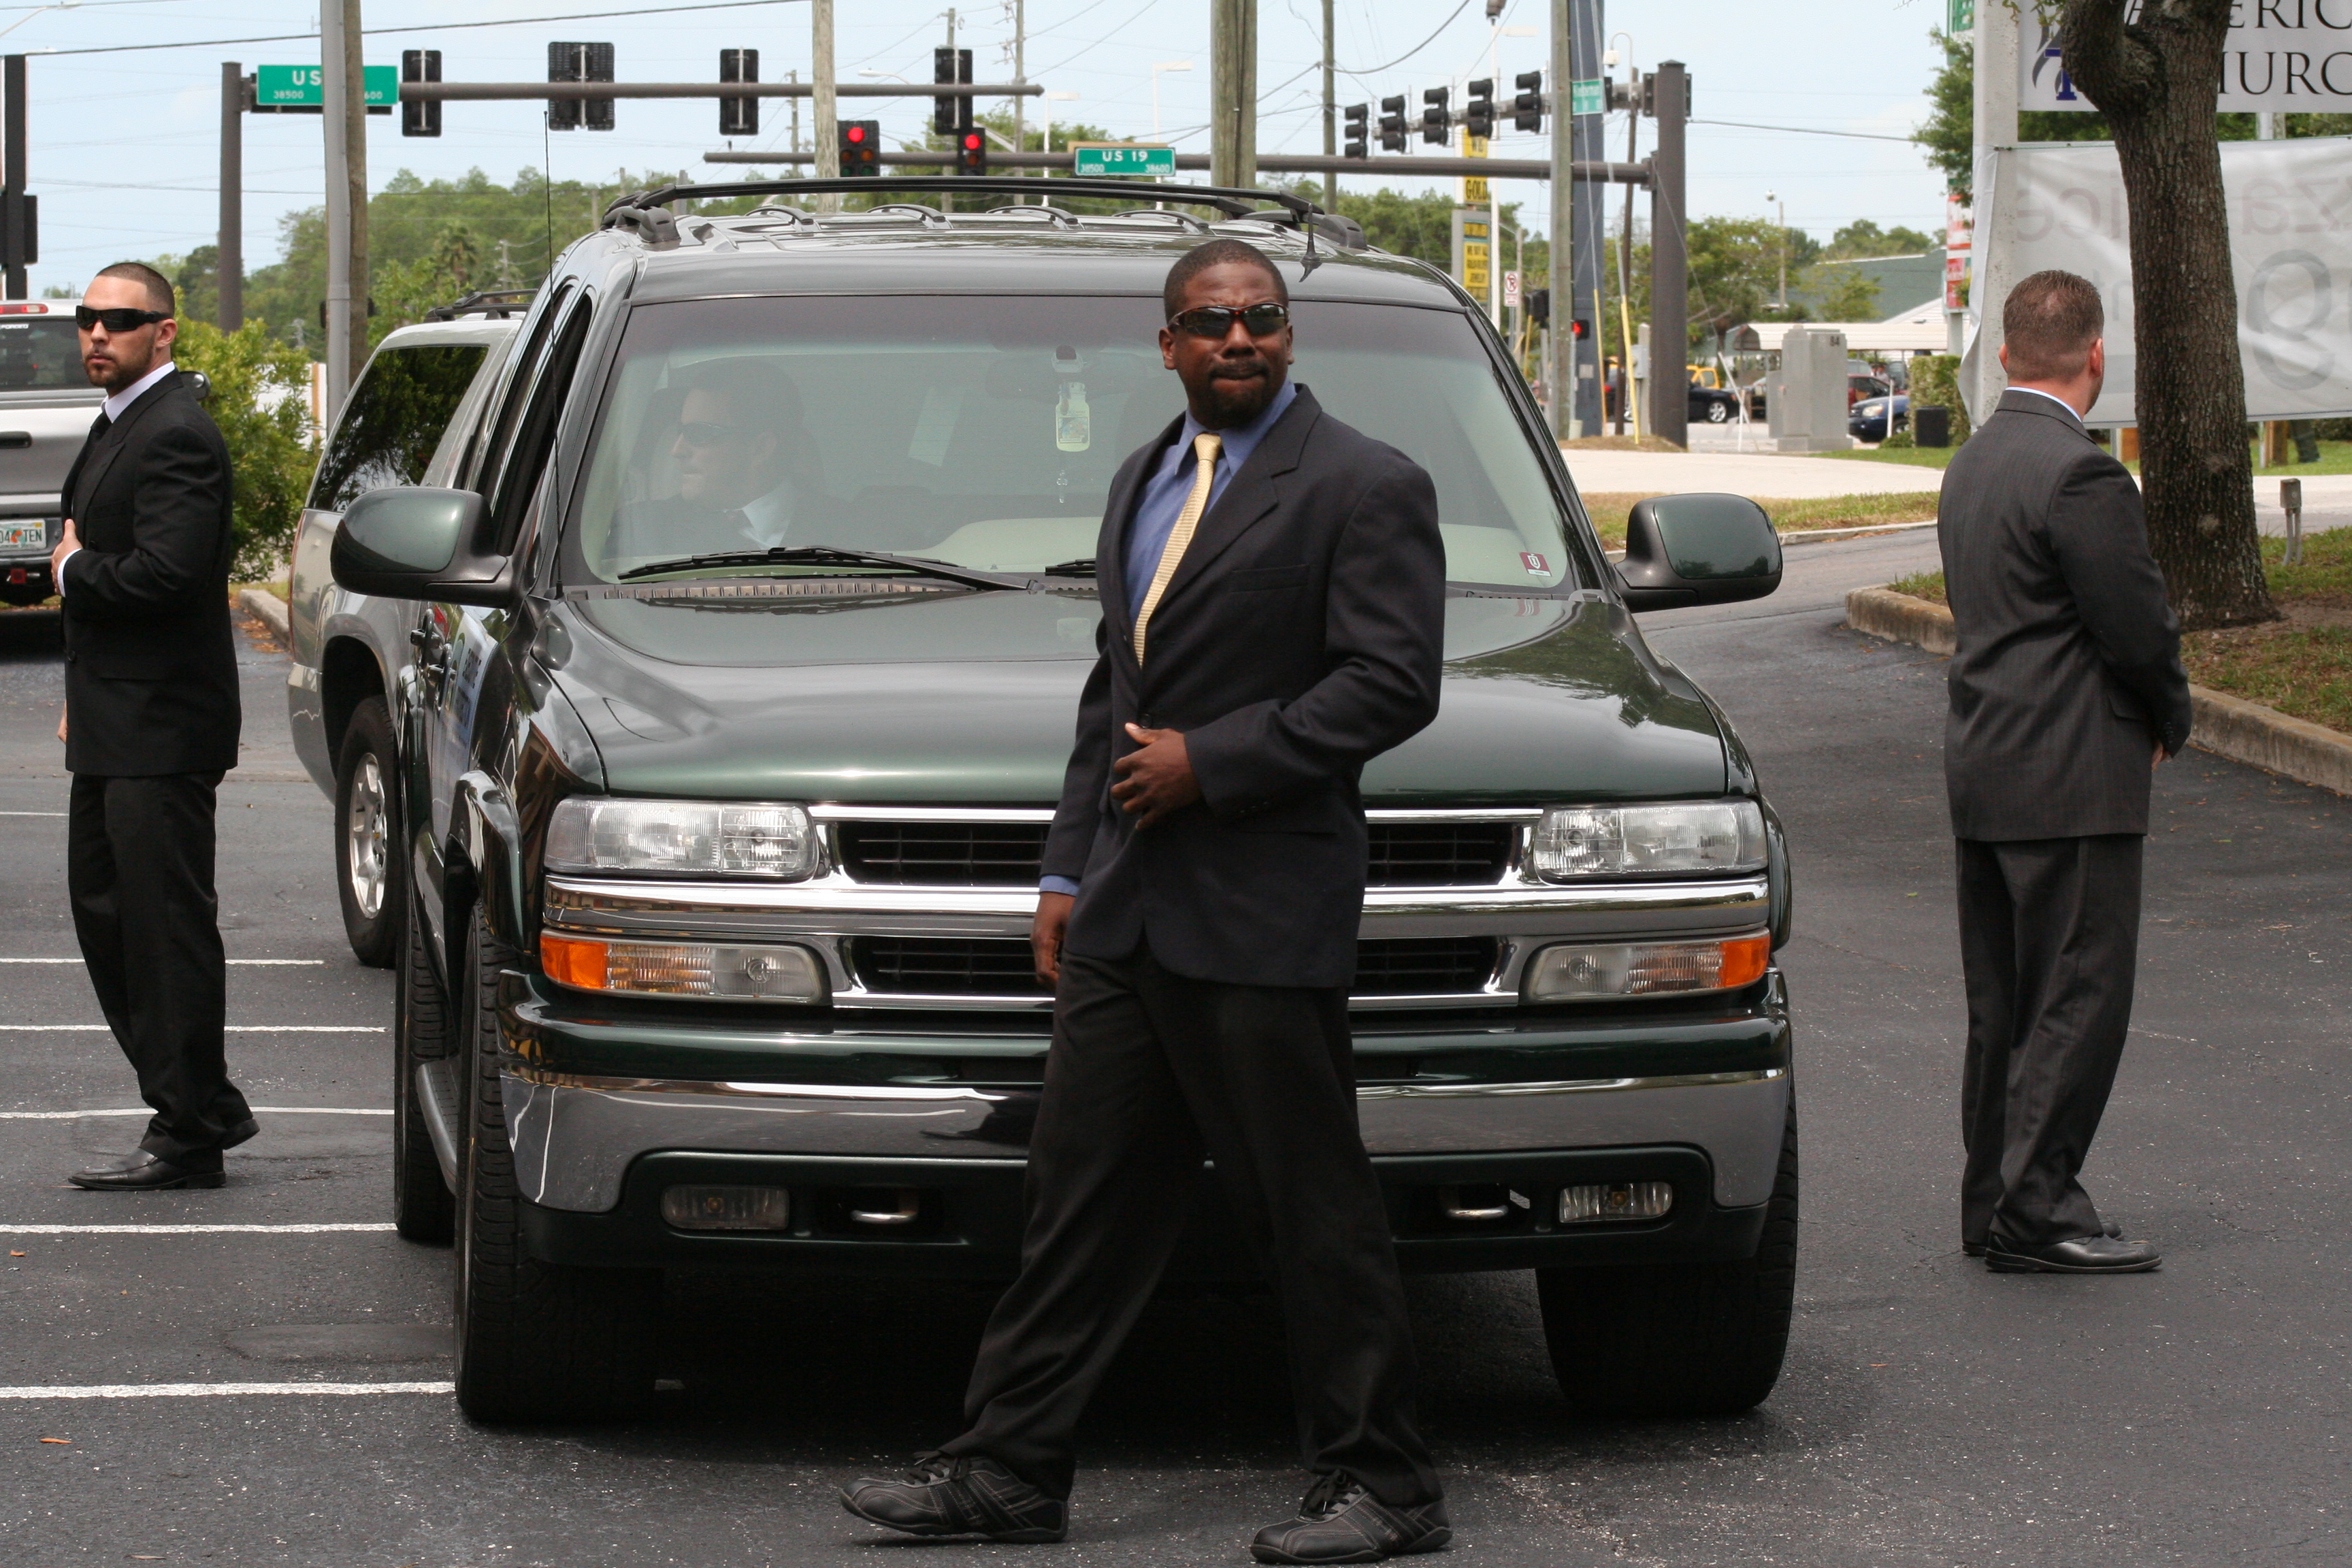 Executive Protection, Executive Security | Pinkerton